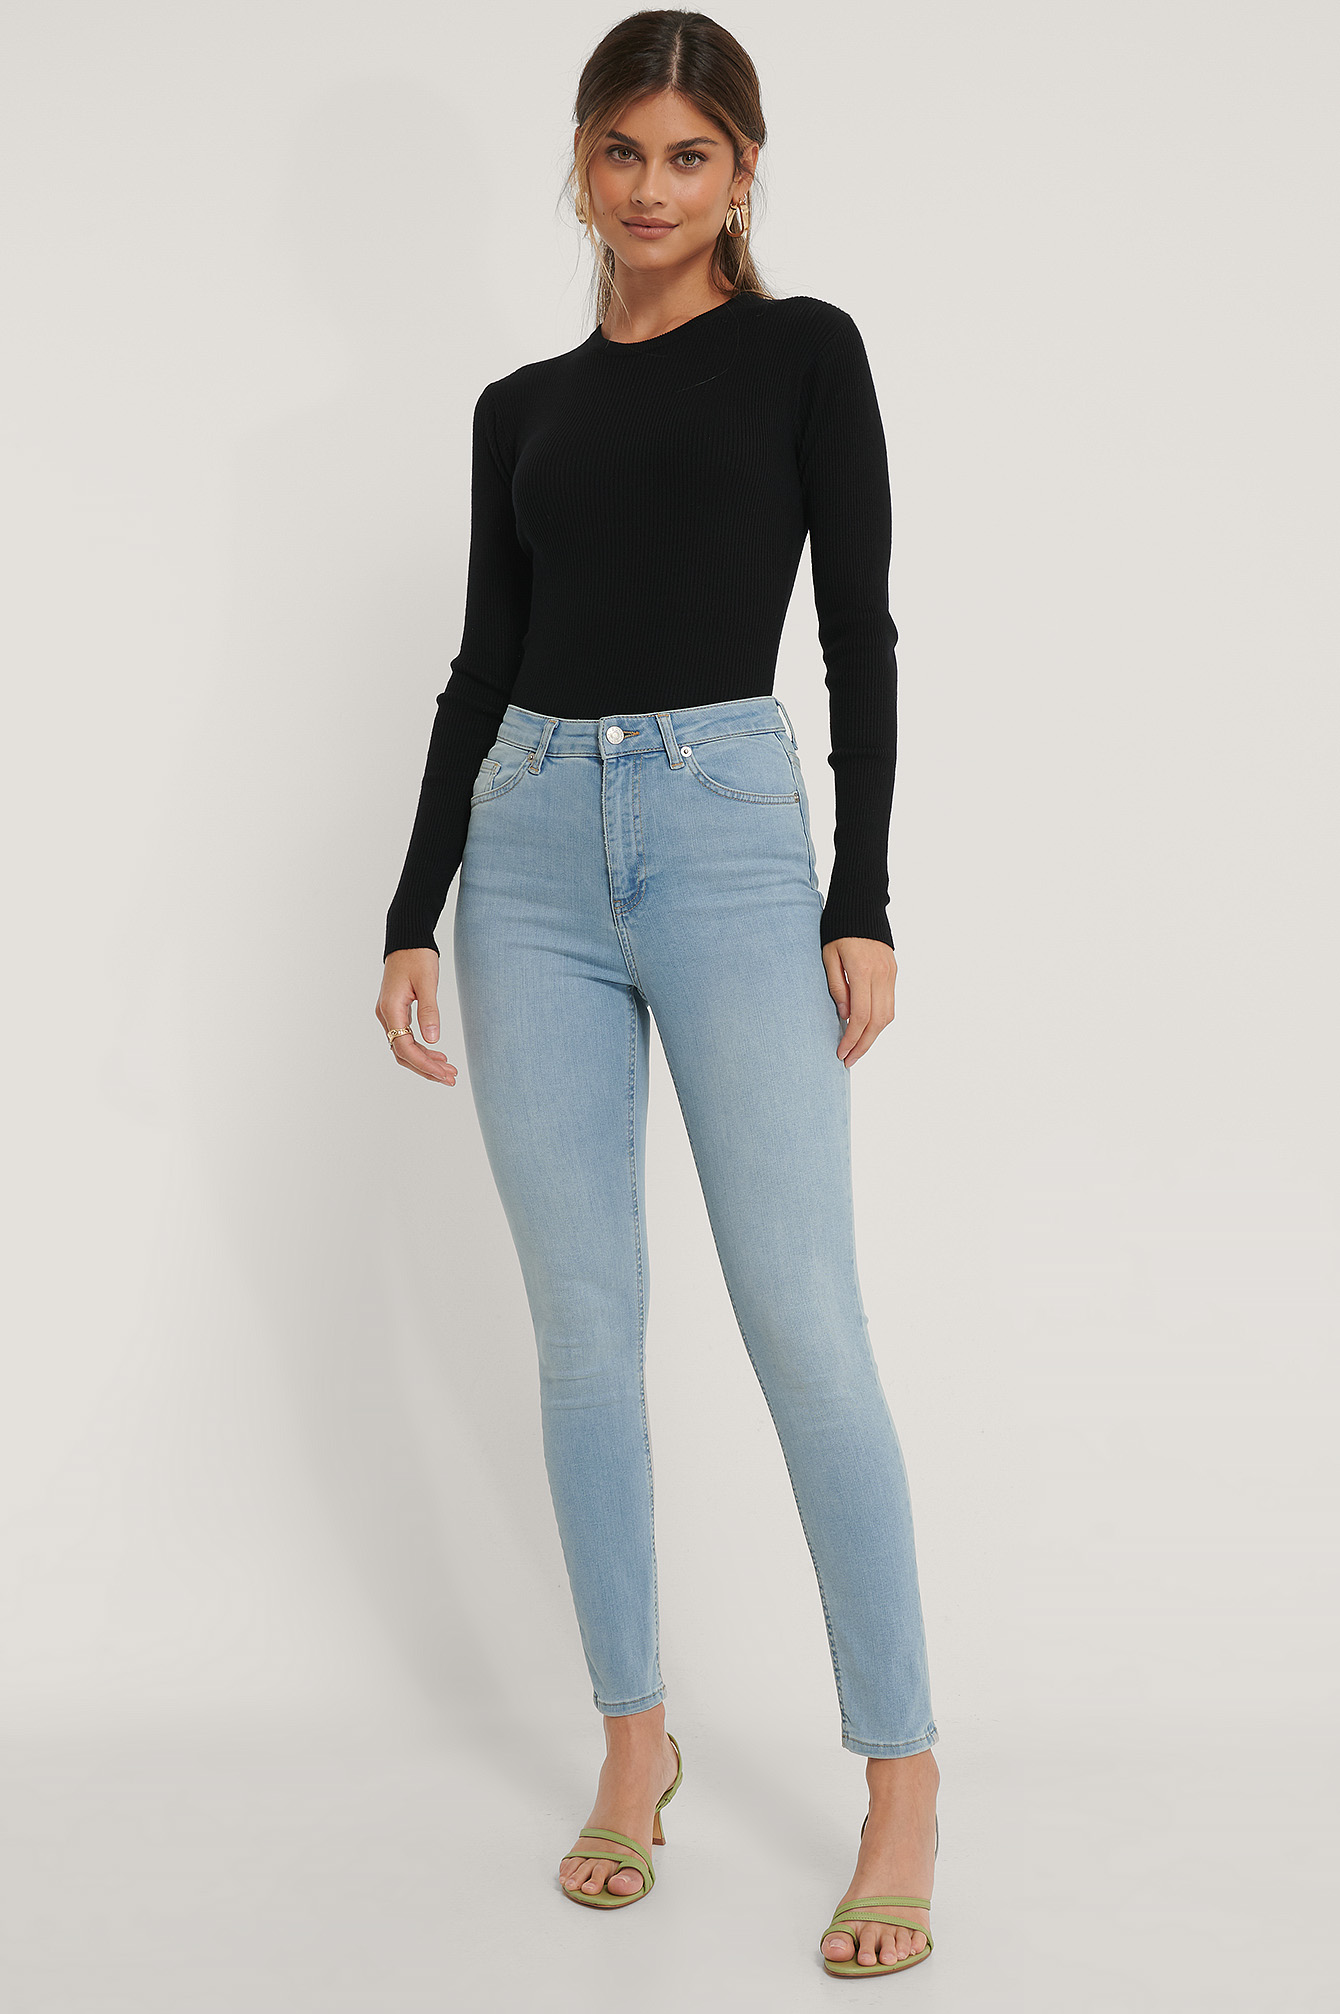 Light Blue Skinny High Waist Jeans